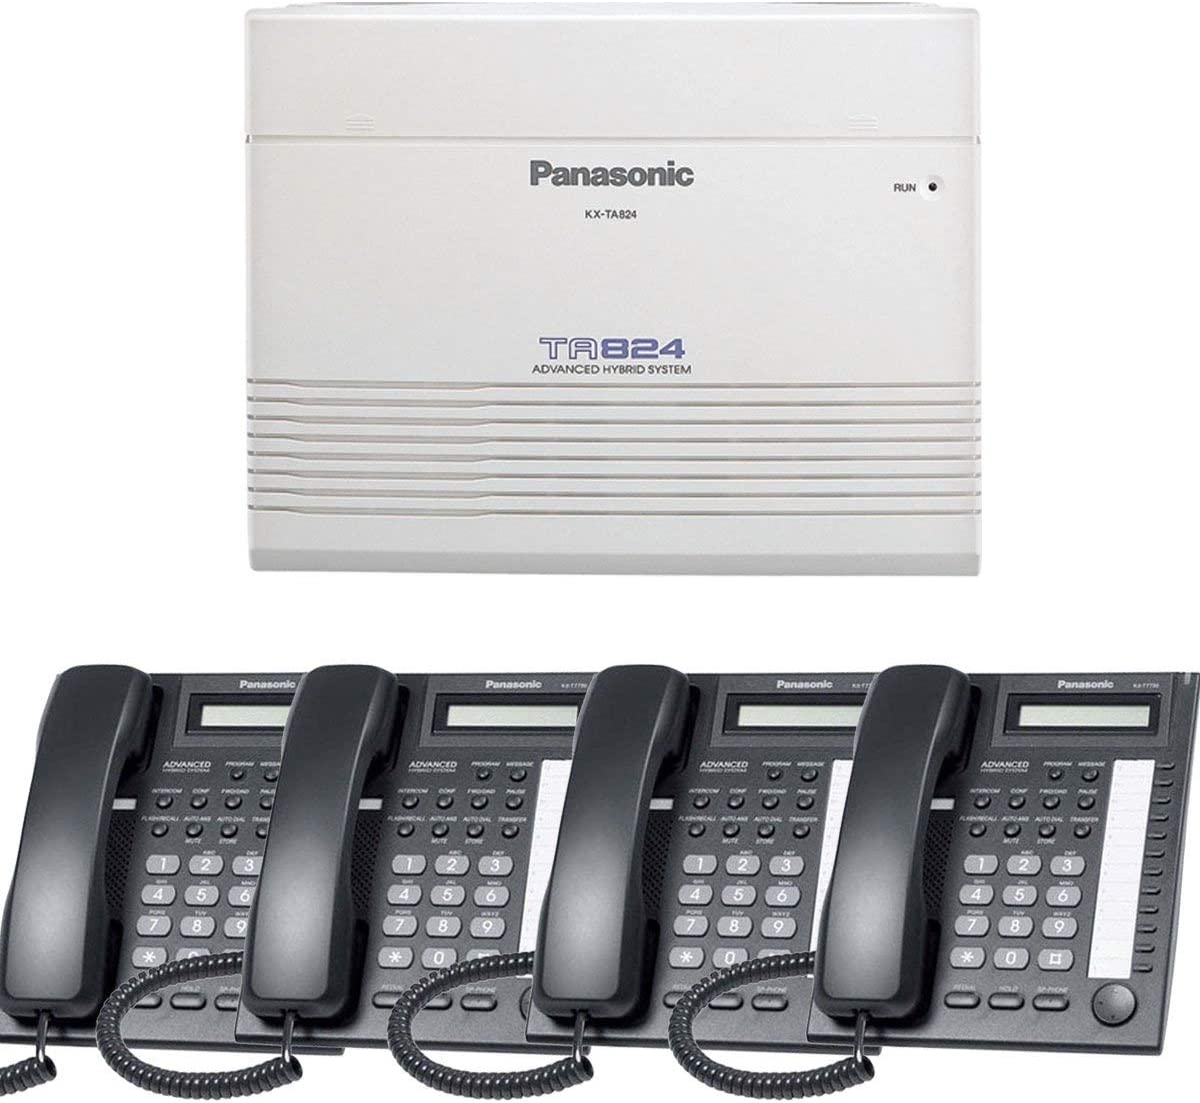 Panasonic Small Office Business Phone System Bundle Brand New includiing KX-T7730 4 Phones Black and KX-TA824 PBX Advanced Phone System With 1 Year Warranty Sold by Phone Source Direct USA